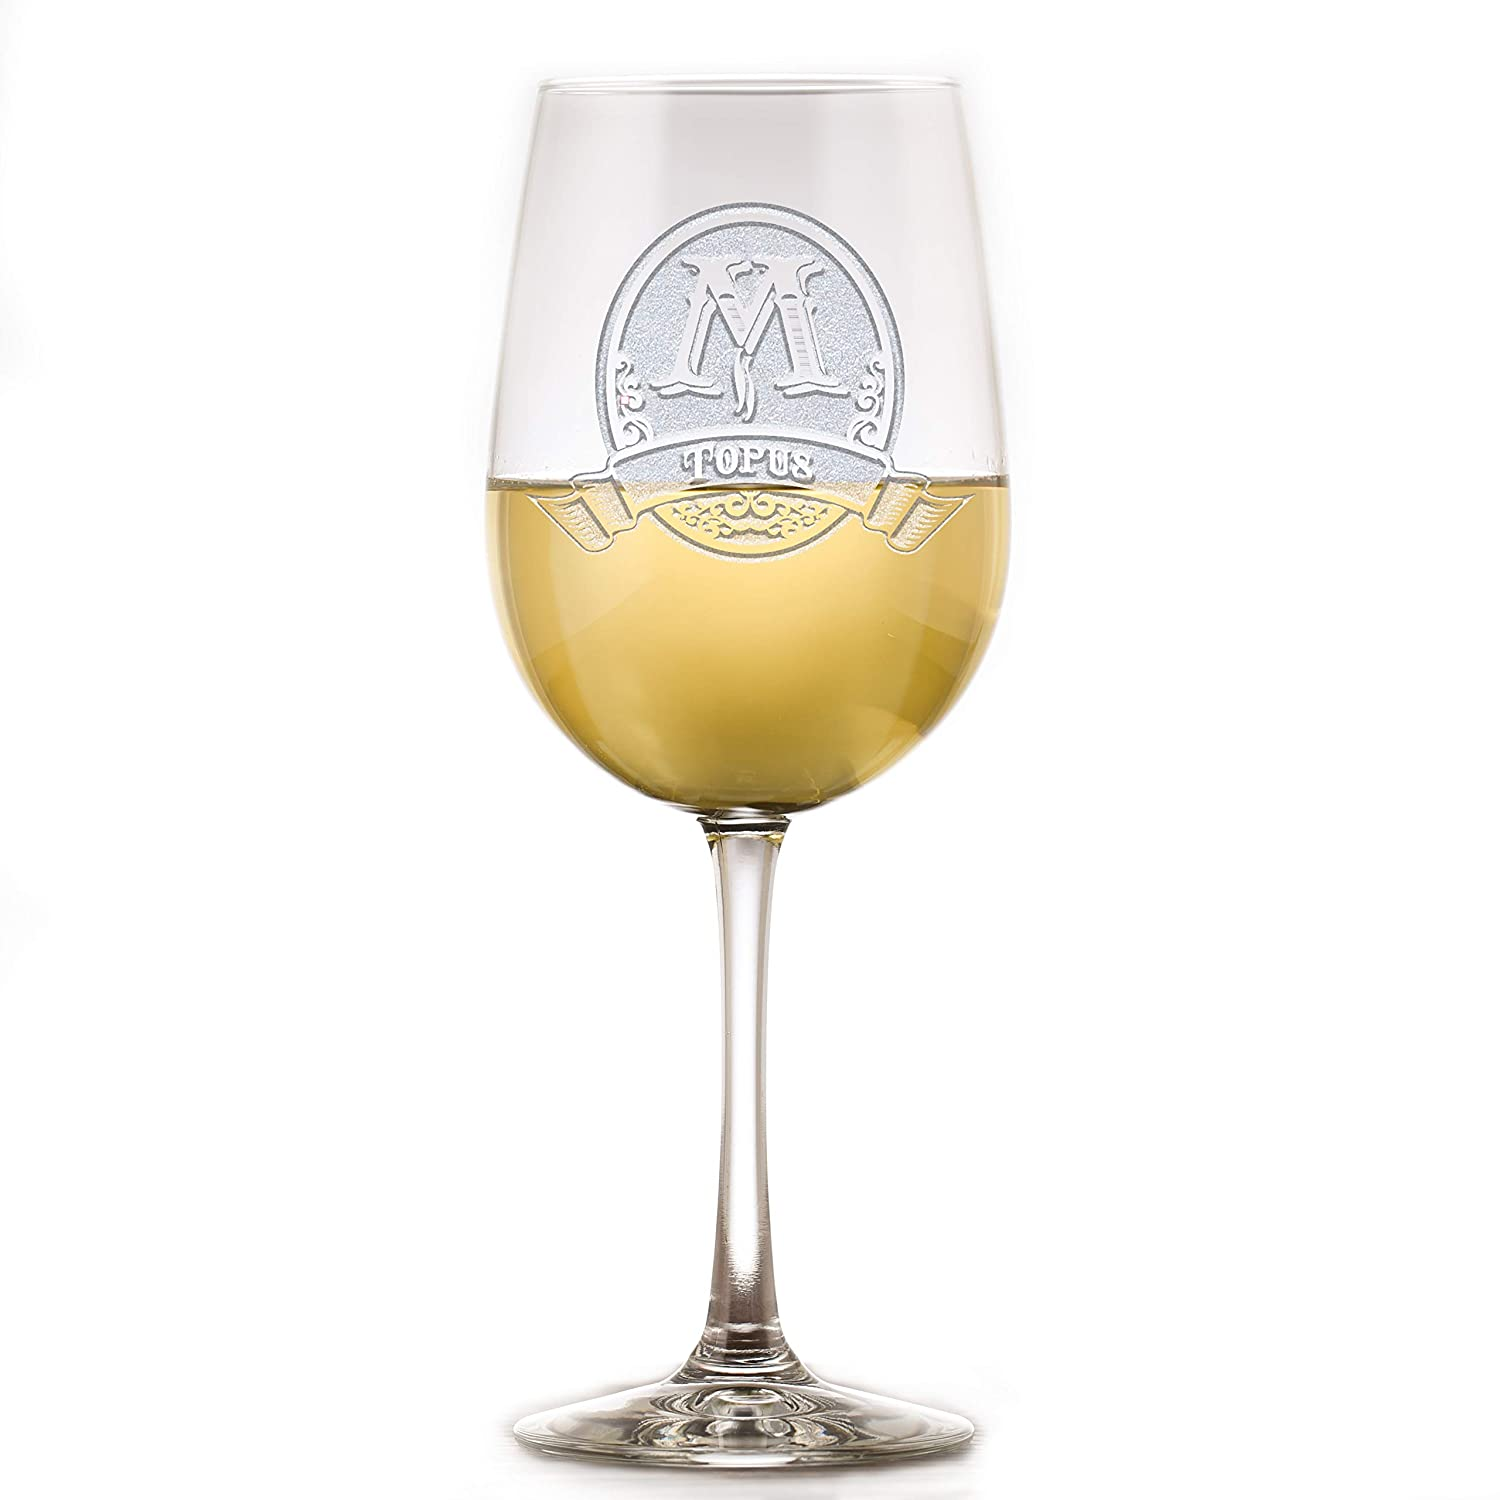 Personalized Engraved Wine Glasses Custom Gift Gorgeous Set In a popularity Lover